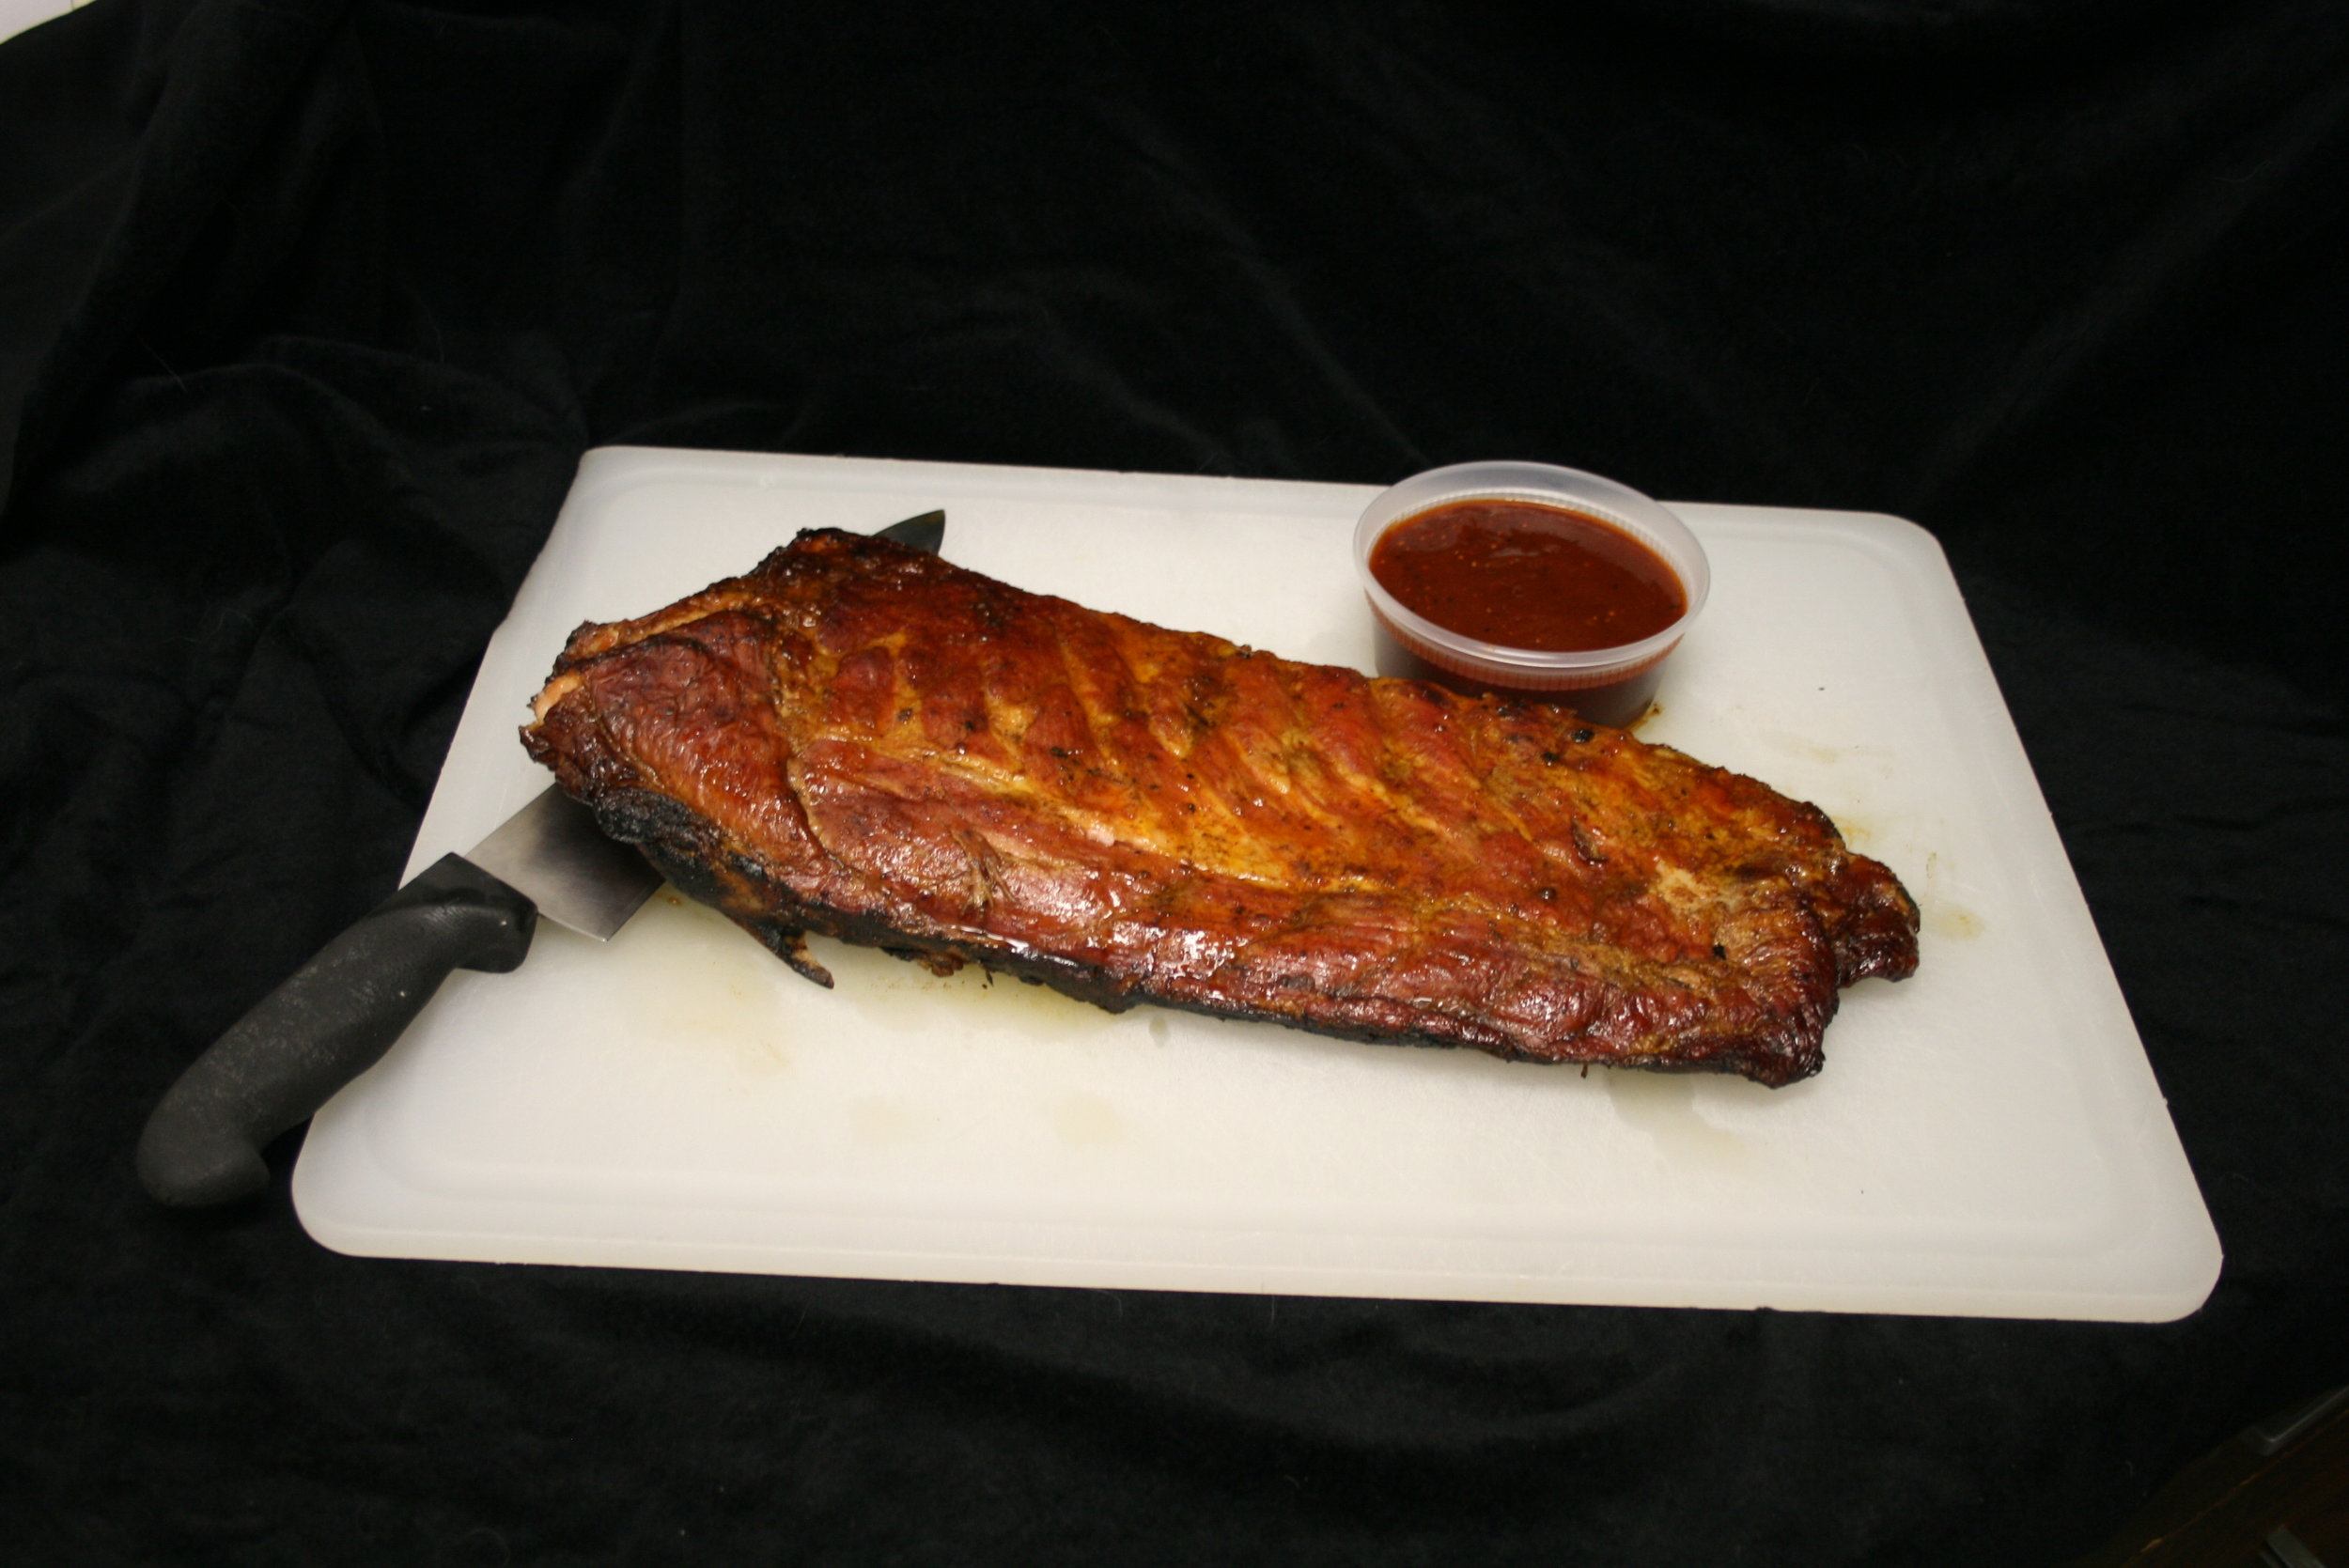 Slab from Steve's Rib Catering